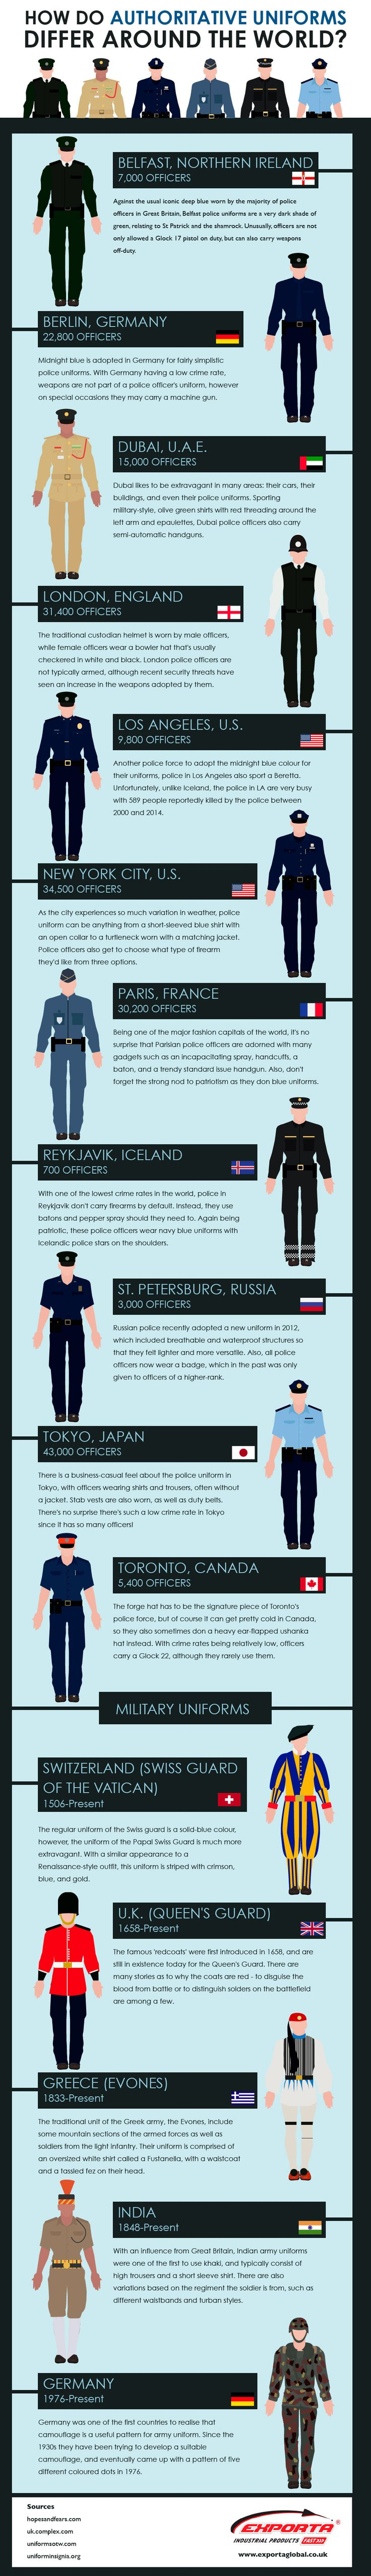 How Do Authoritative Uniforms Differ Around the World? #infographic #Unifroms #Military